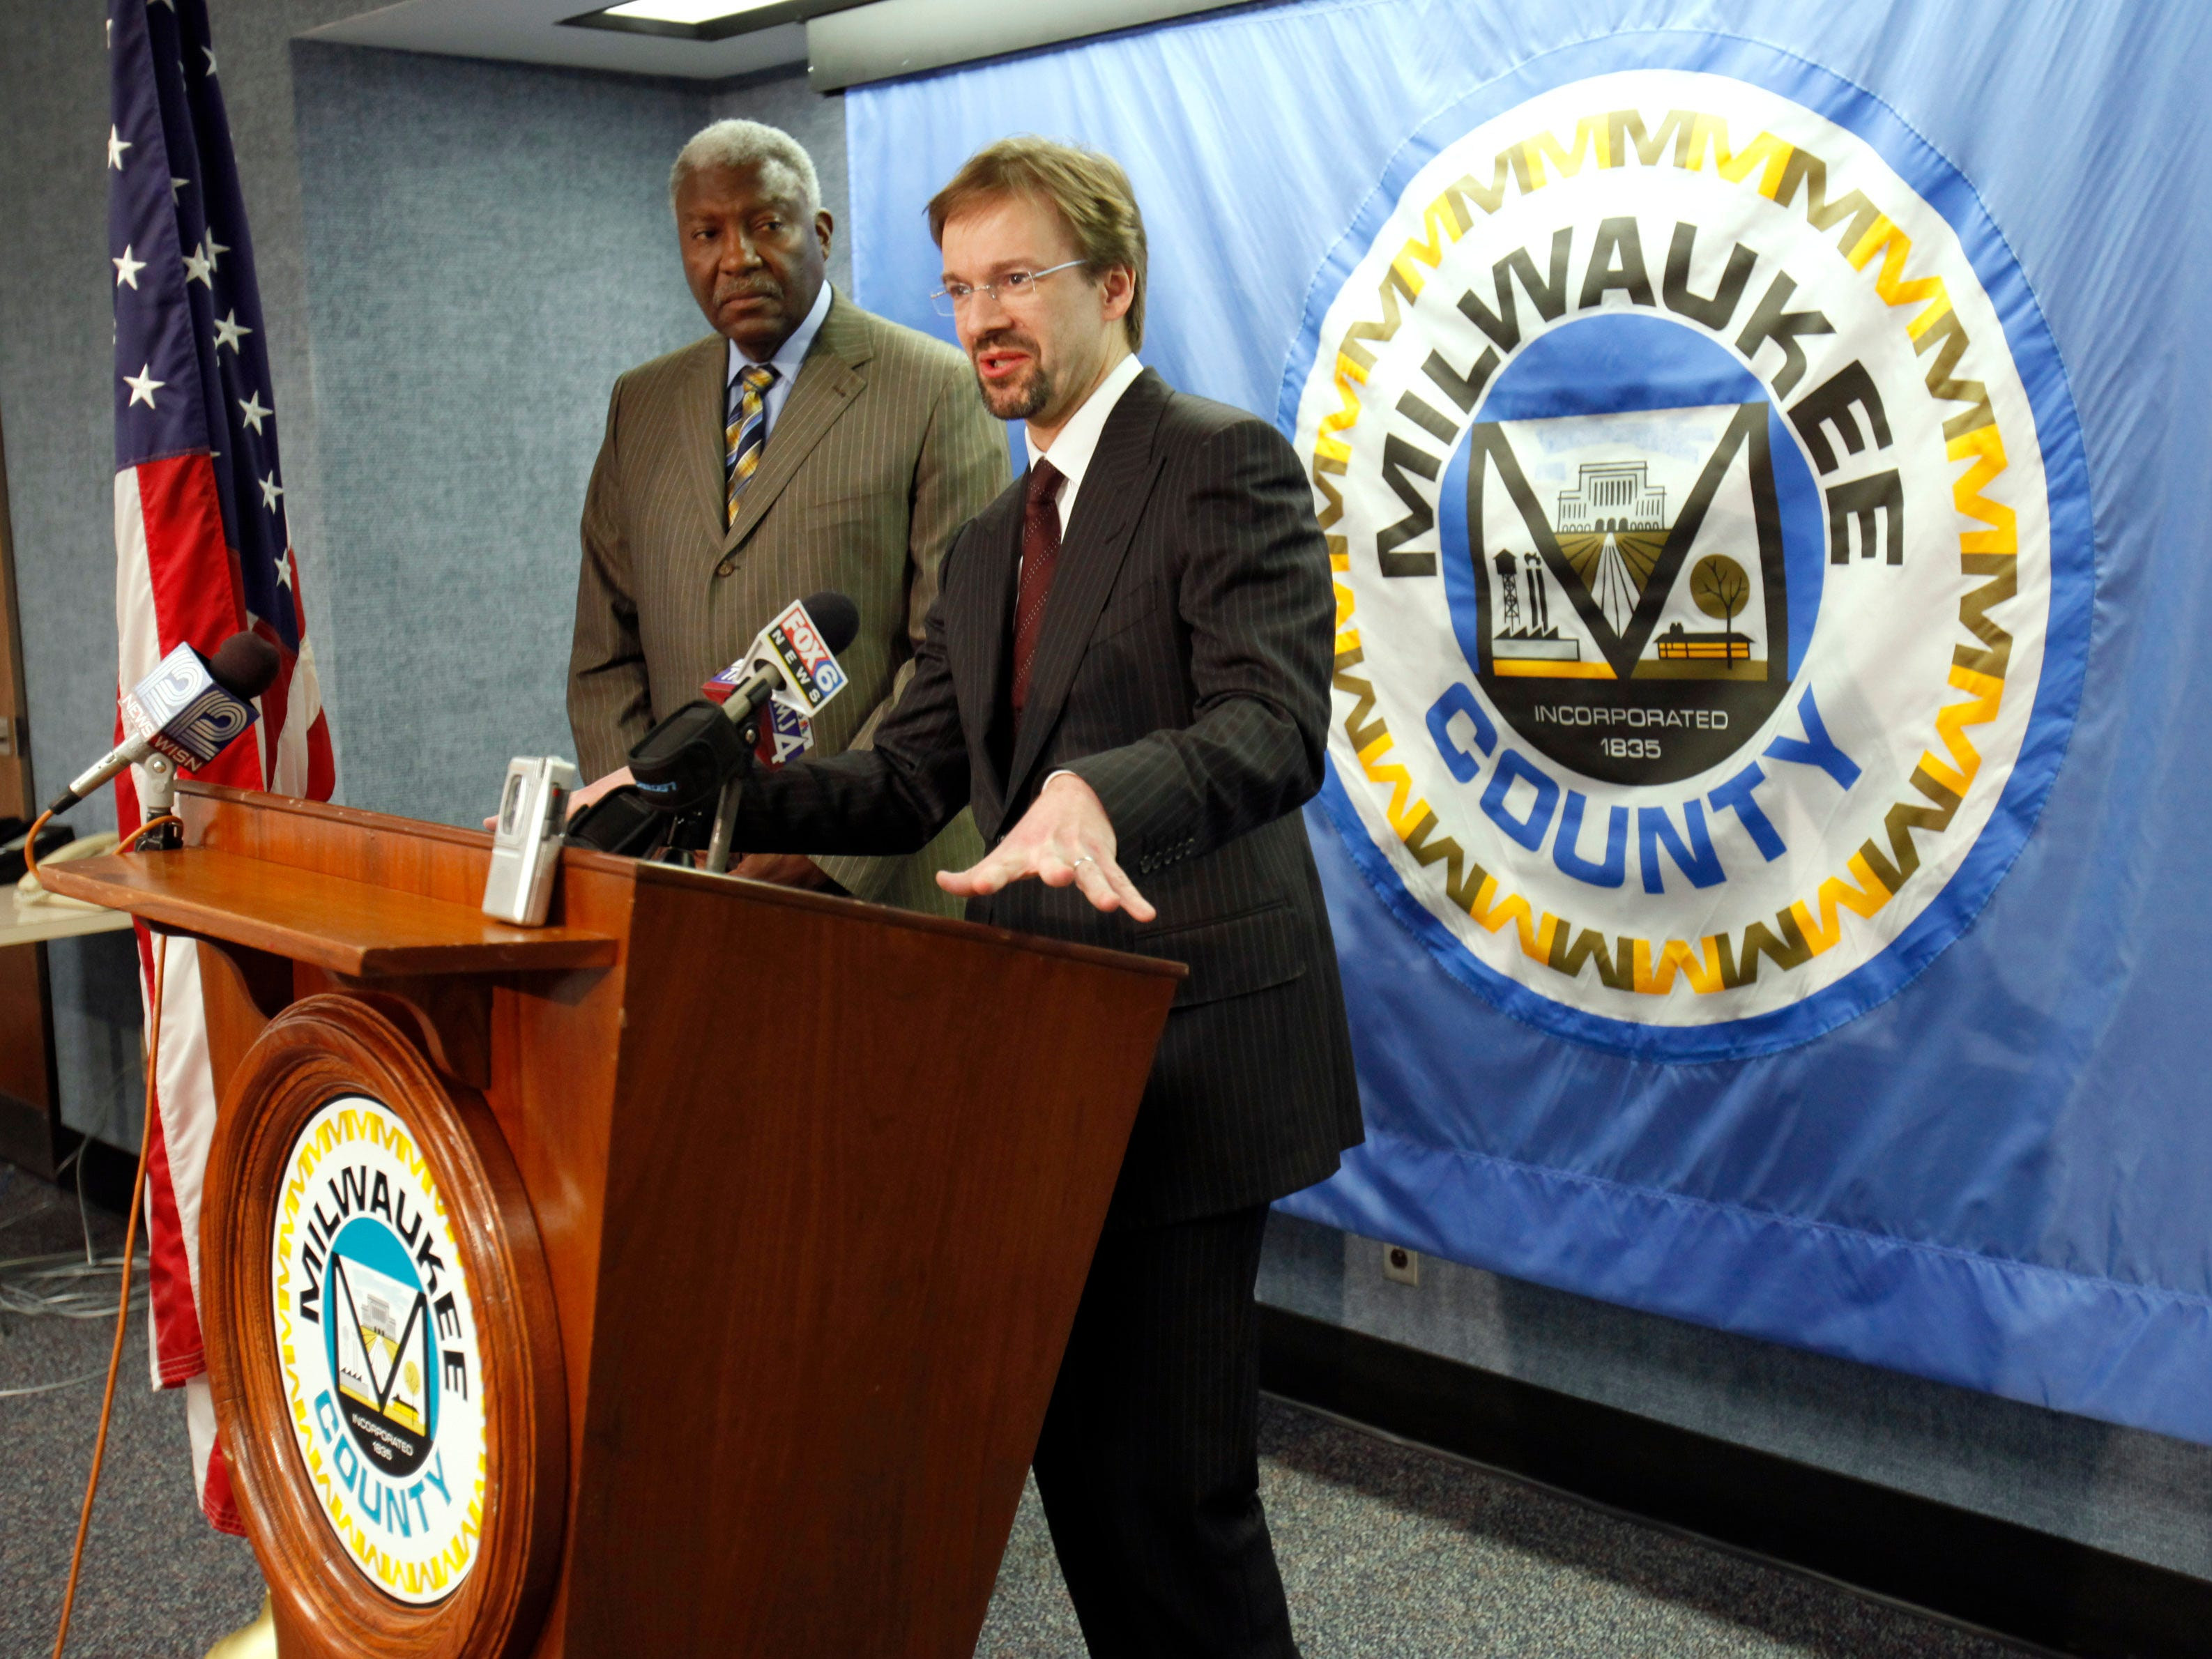 2011: New Milwaukee County Executive, Chris Abele (right), speaks during a press conference with the outgoing executive, Marvin Pratt at the Milwaukee County Courthouse on April 7.